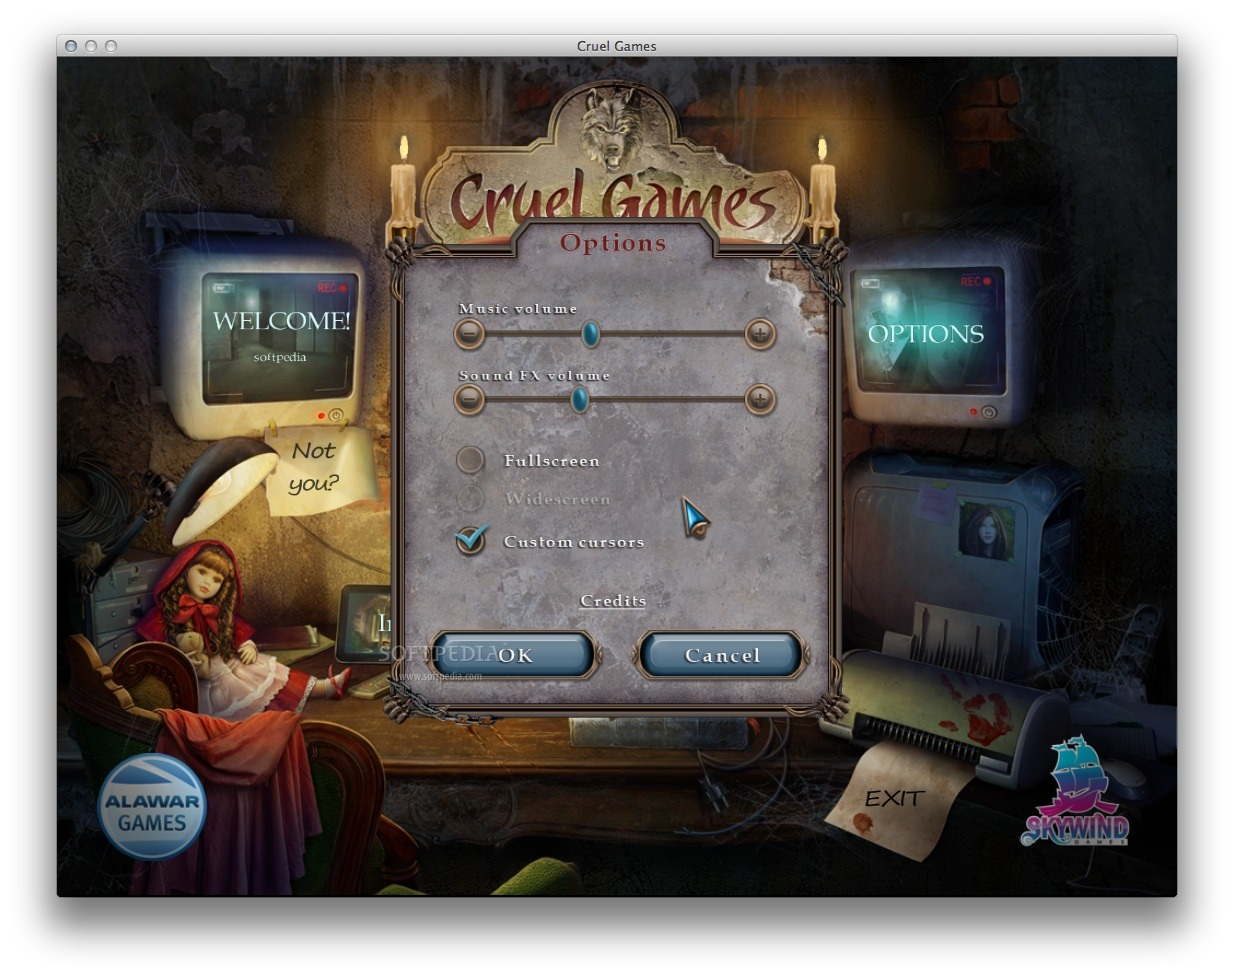 Cruel Games: Red Riding Hood screenshot 4 - The 'Options' panel allows you to adjust the music volume and more.